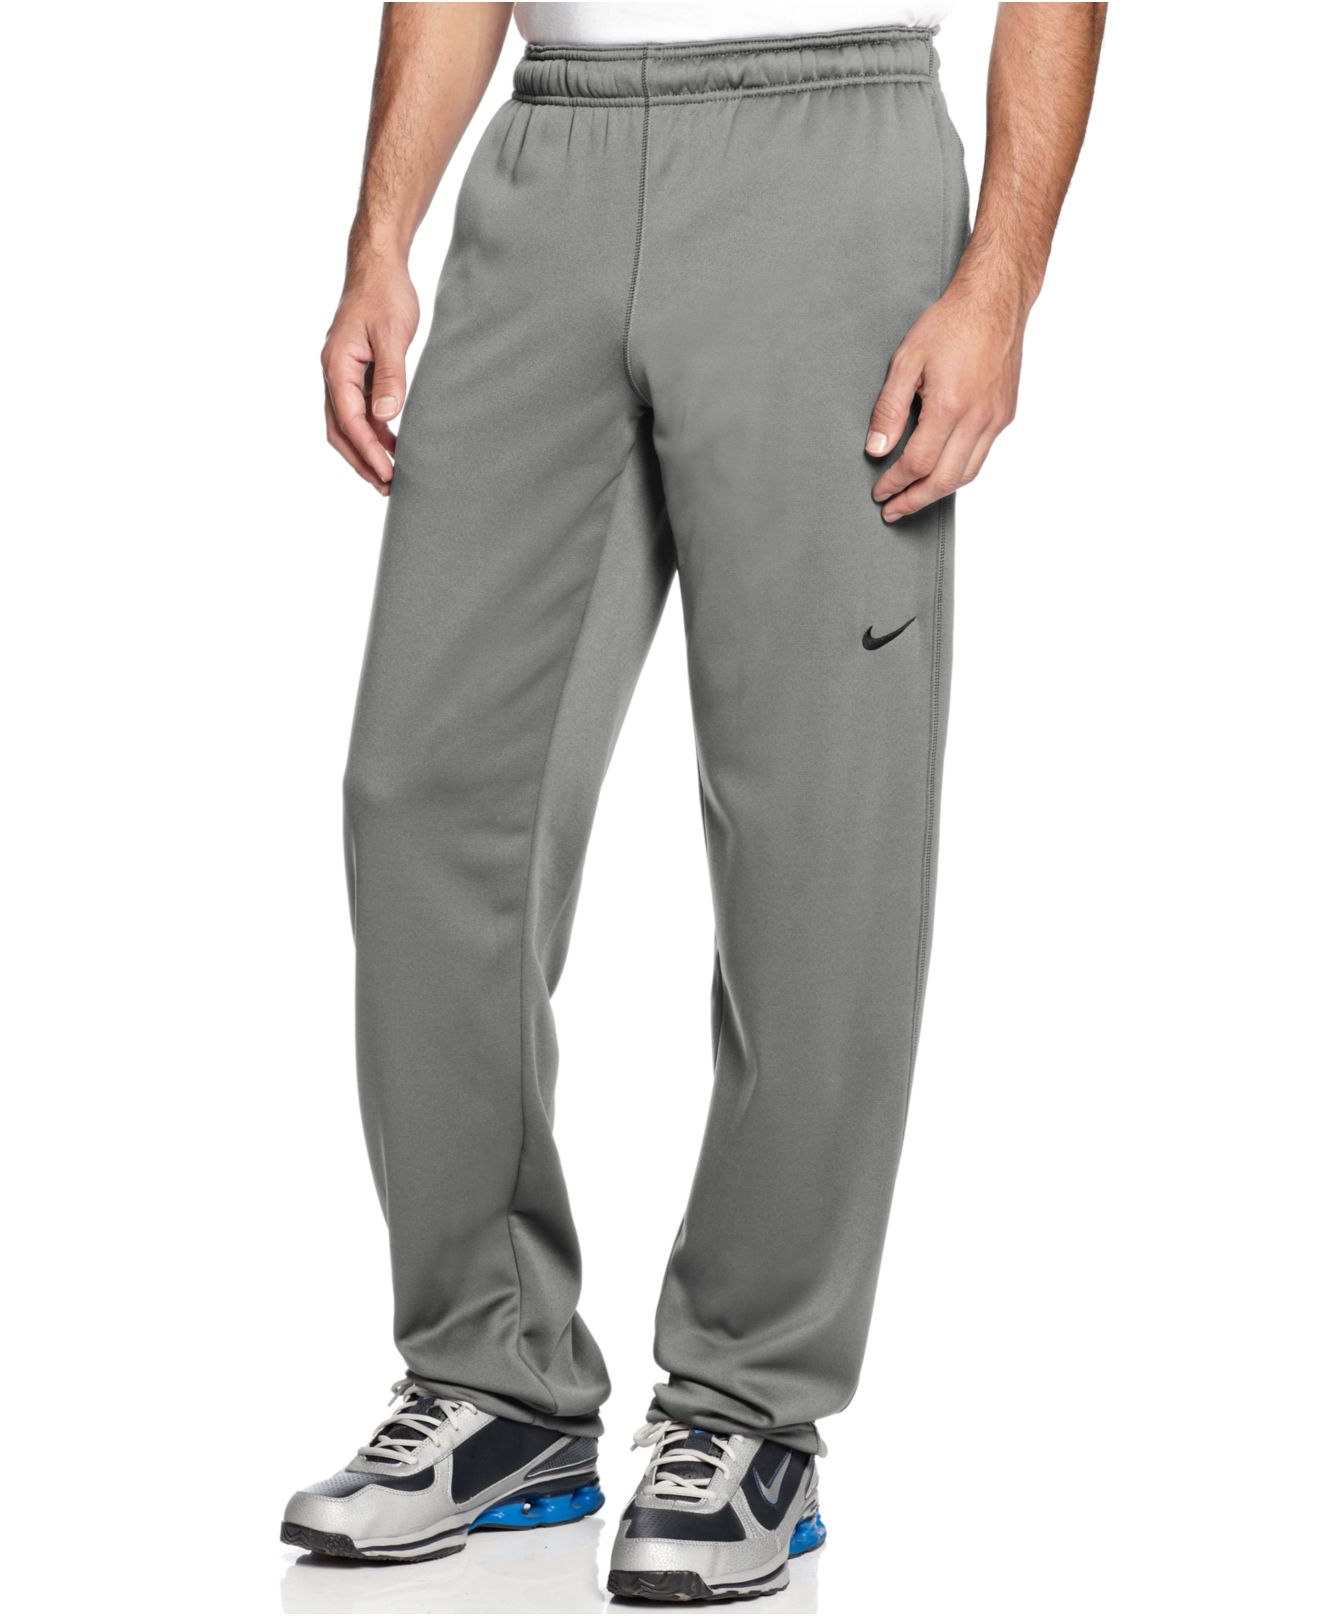 f2e7e2845dab Lyst - Nike Therma-Fit Ko Pants in Gray for Men